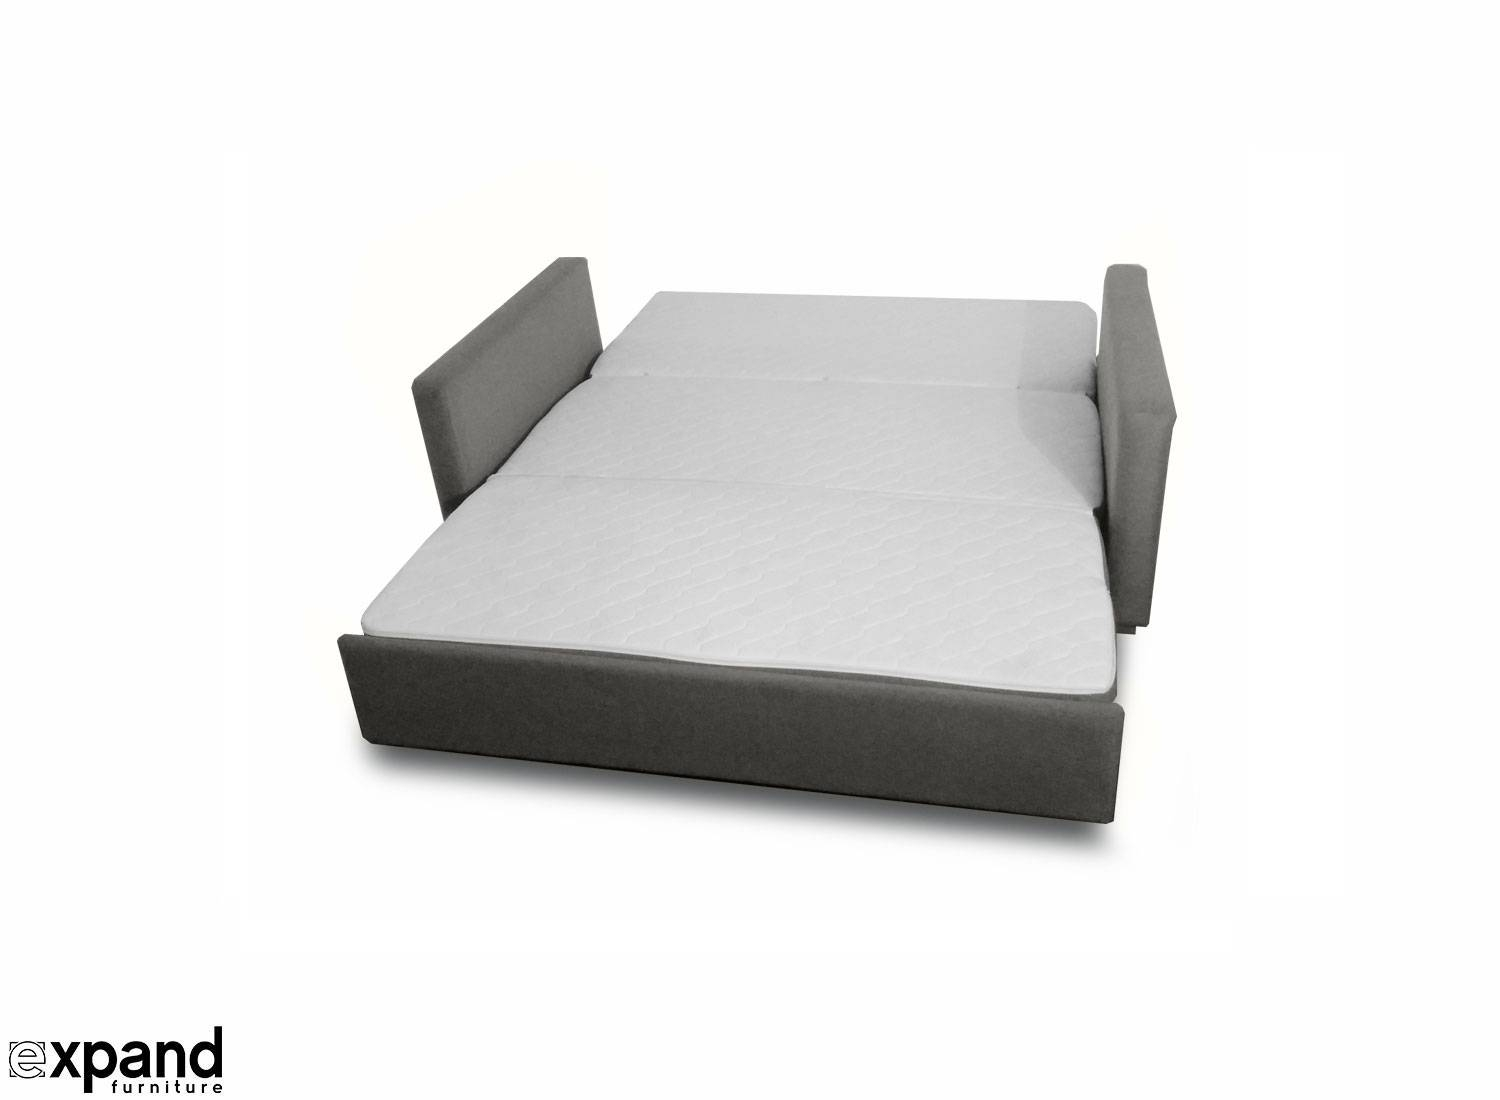 Harmony - Queen Size Memory Foam Sofa Bed | Expand Furniture regarding Sofa Beds Queen (Image 13 of 30)